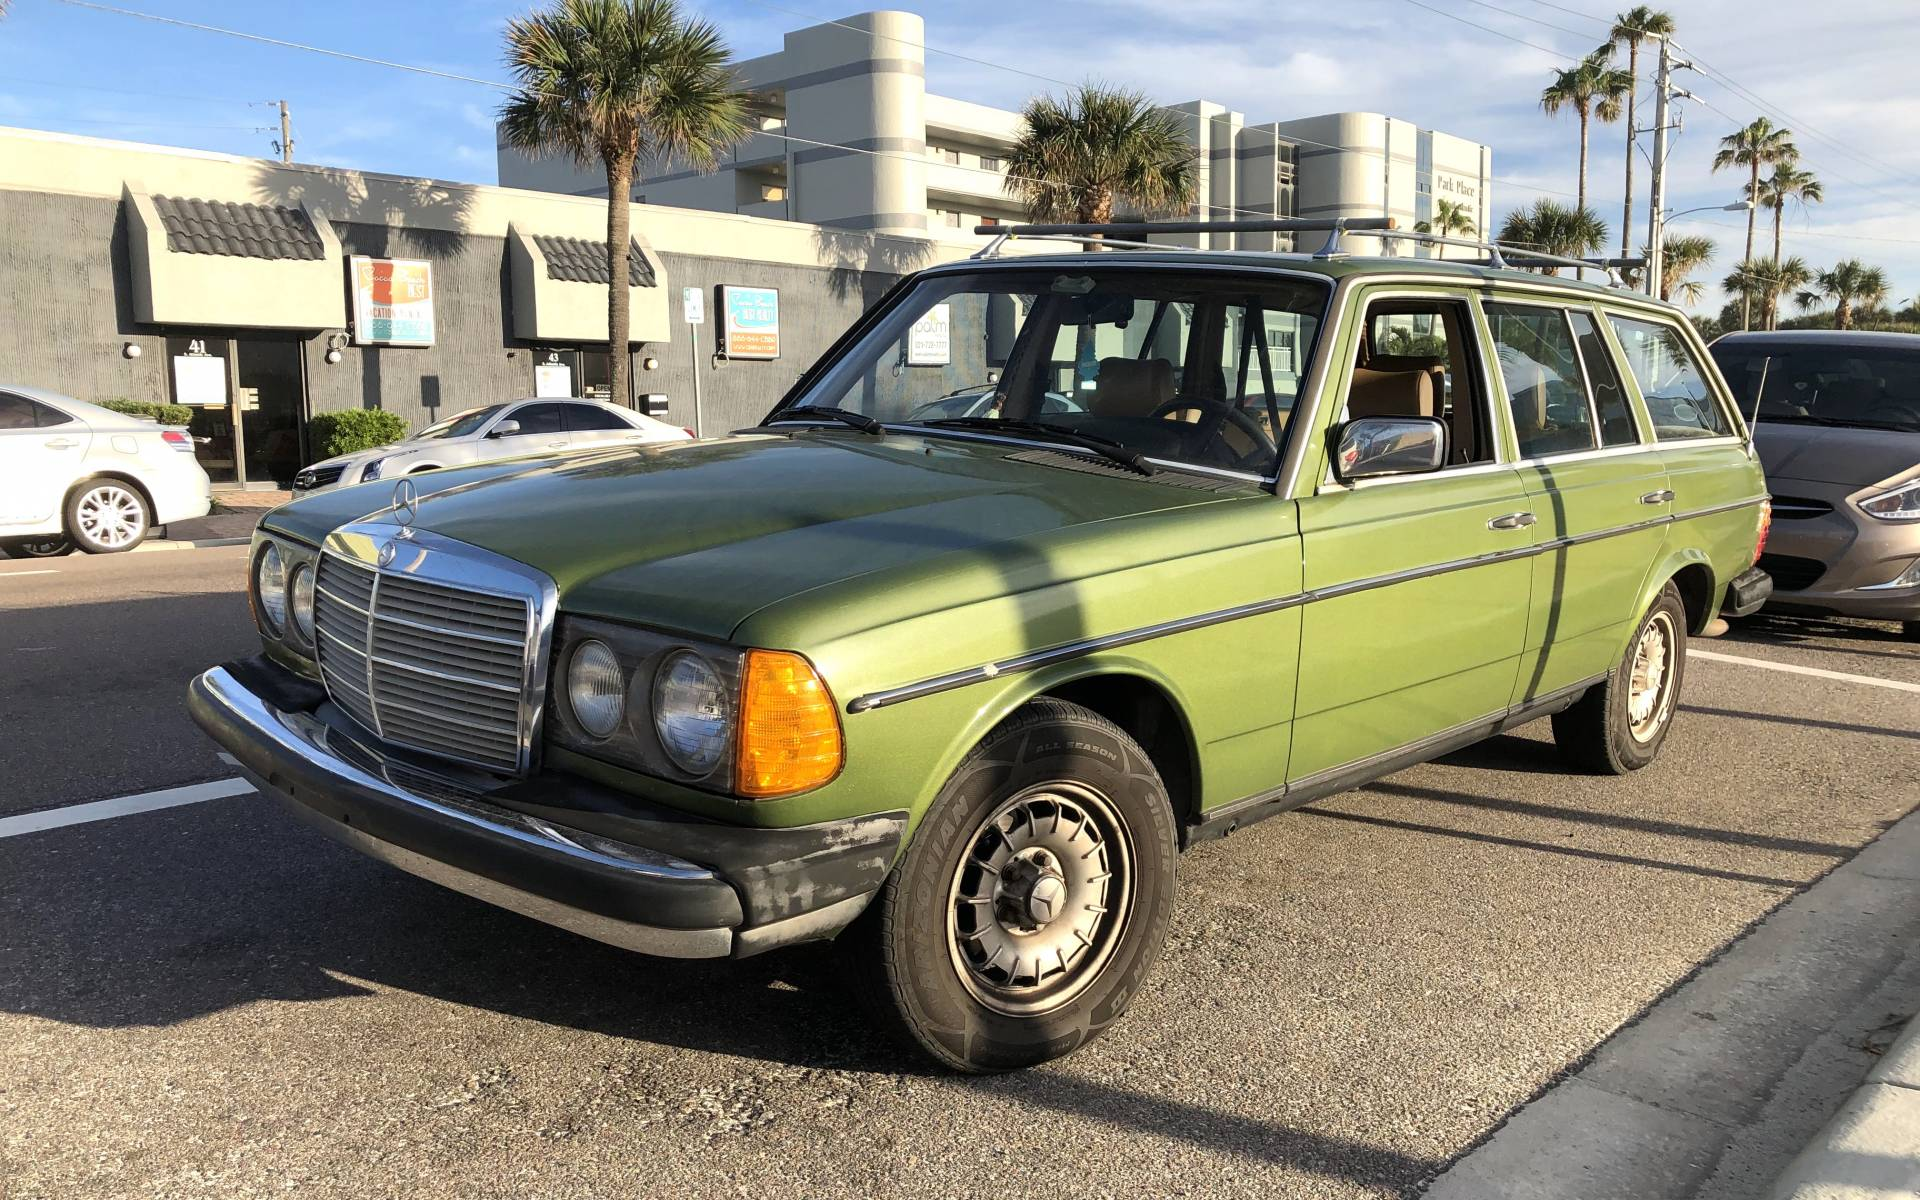 <p><strong>Mercedes-Benz 300TD Turbodiesel</strong></p>